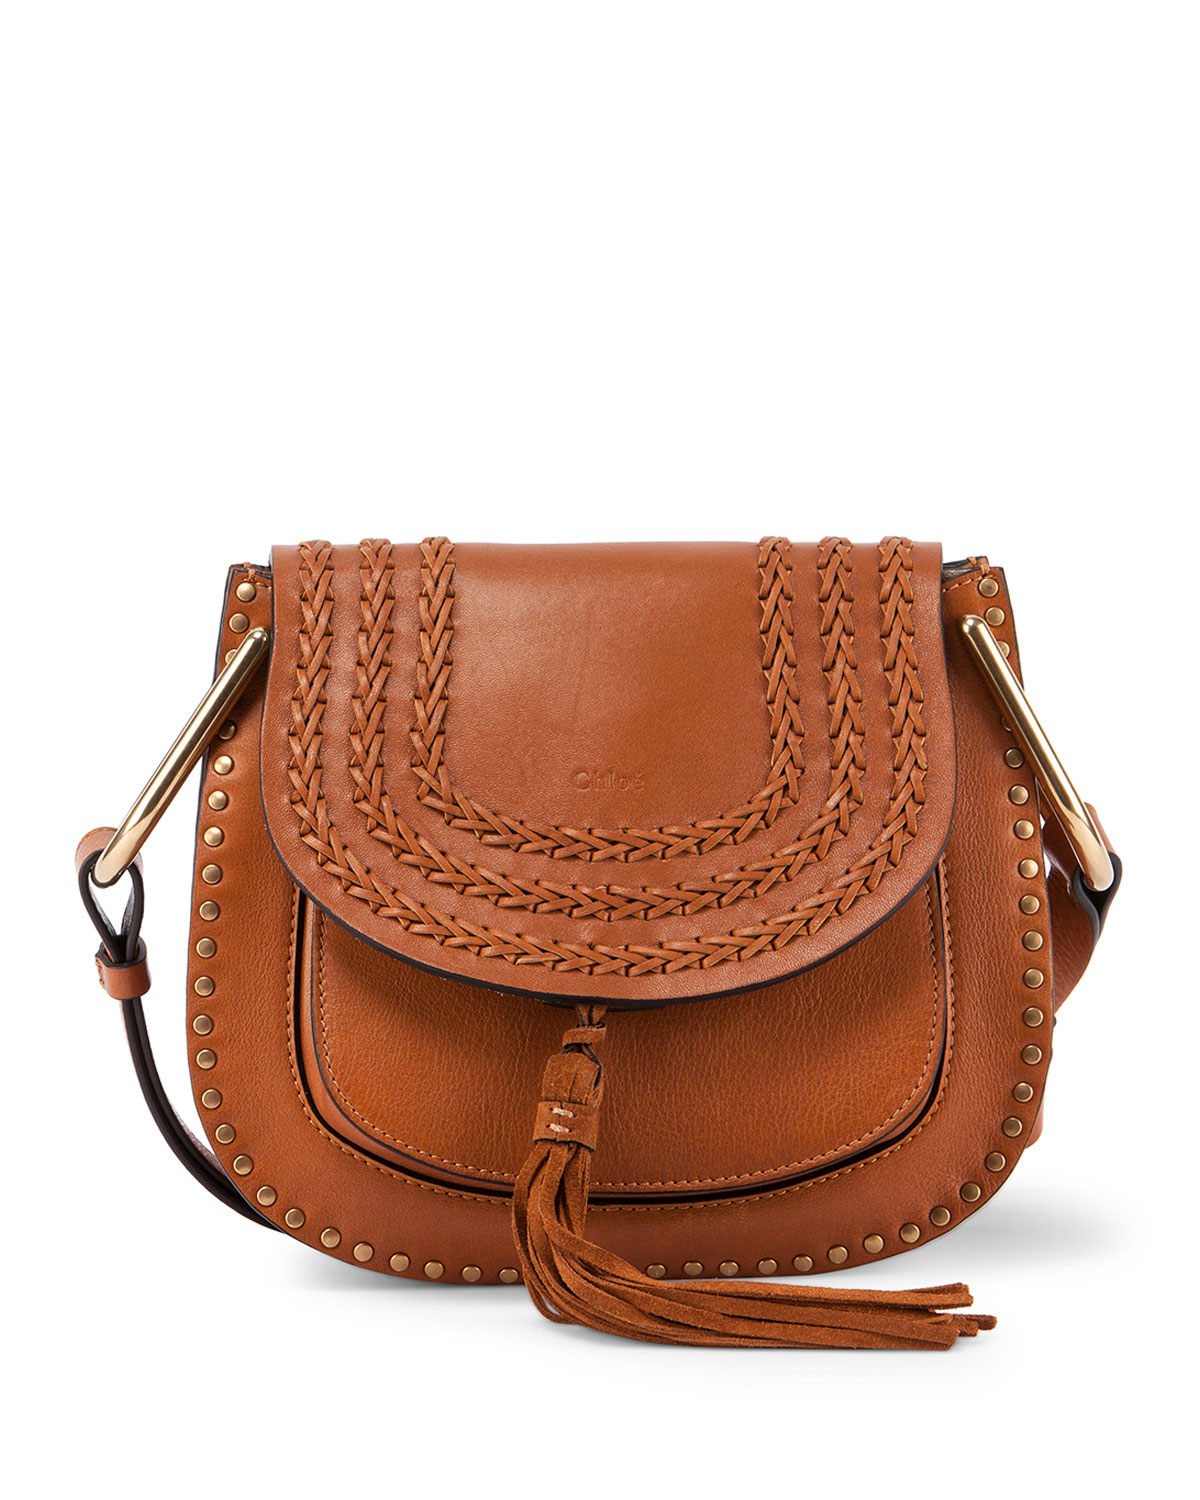 Chlo�� Hudson Medium Shoulder Bag in Brown (caramel) | Lyst